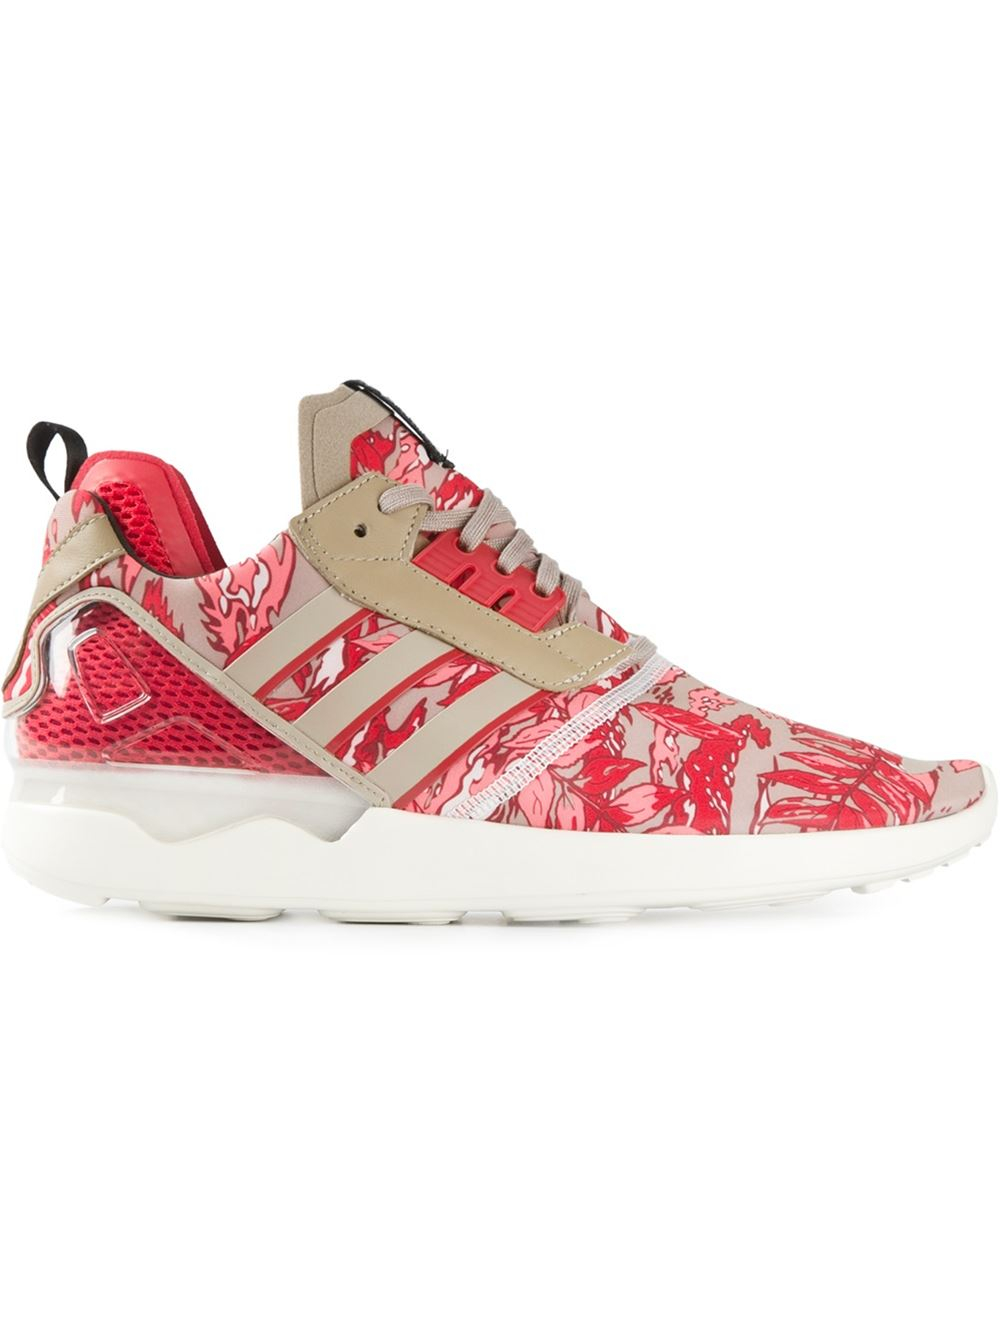 adidas originals zx 8000 boost sneakers in pink for